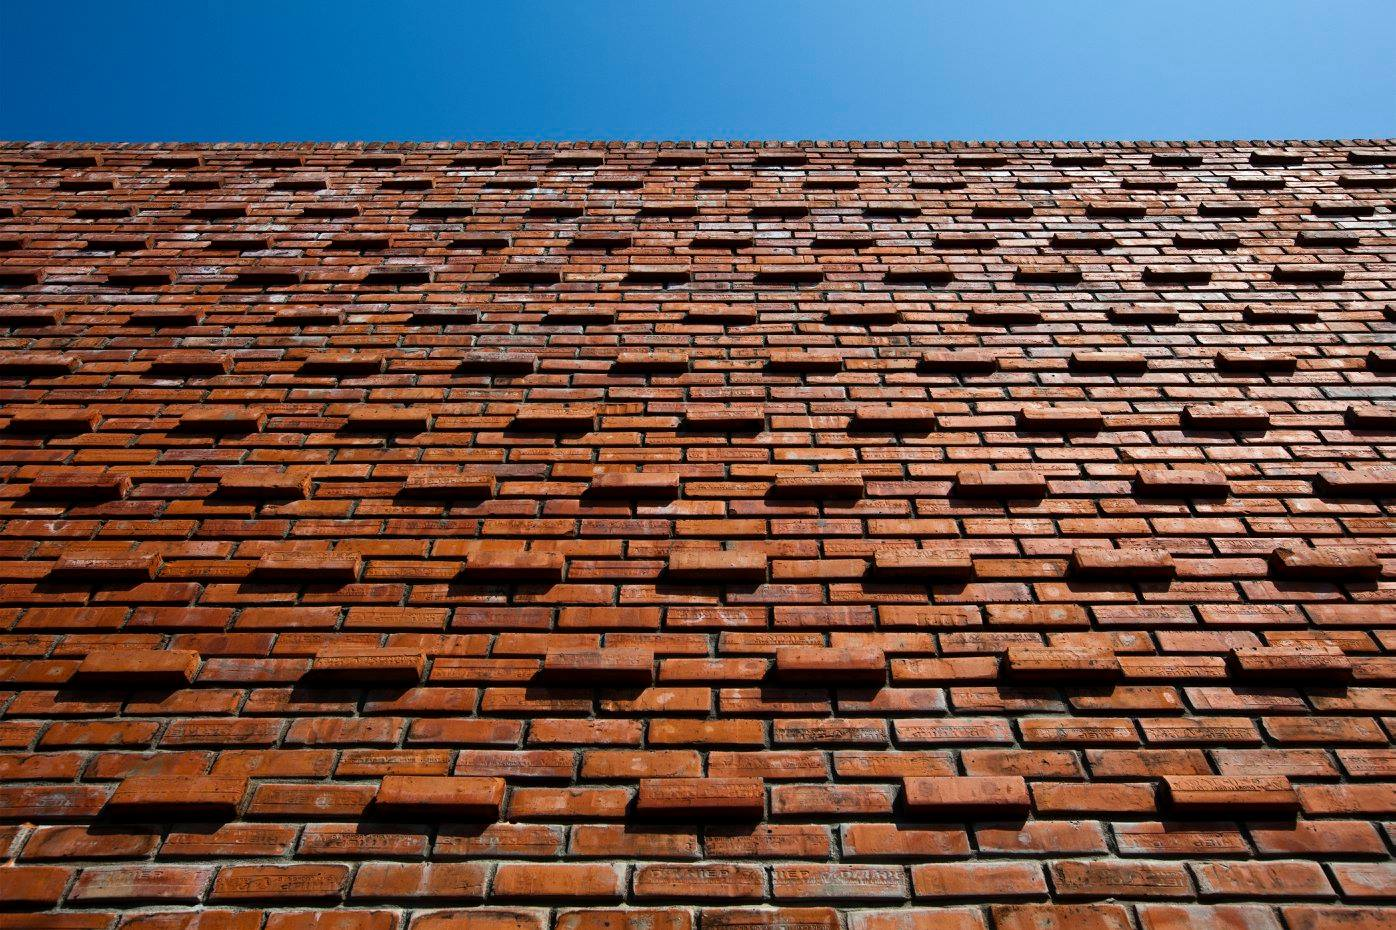 Brick Wall Design A Creative Brick House Controls The Interior Climate And